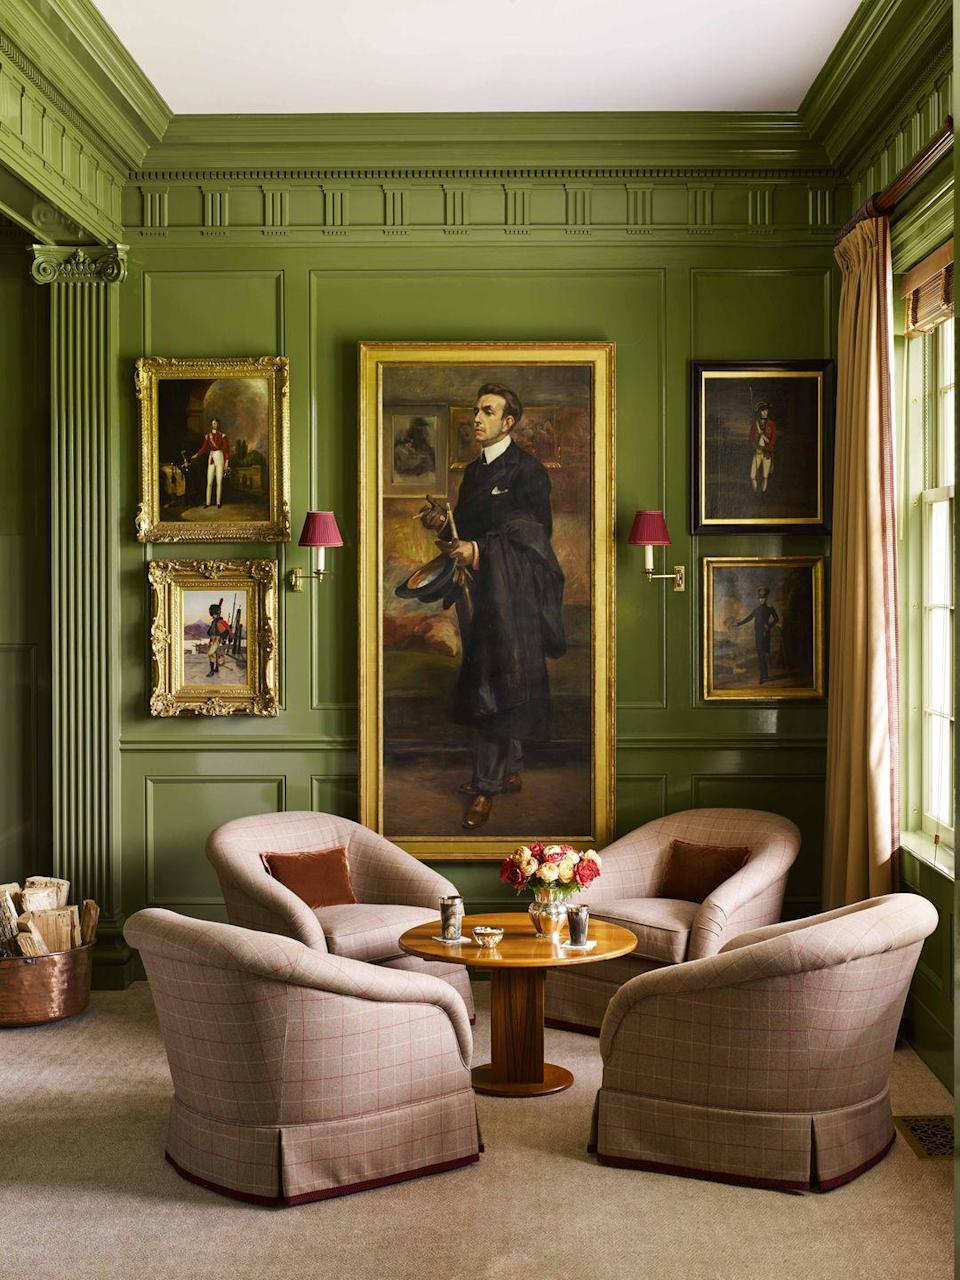 """<p>In the adjoining cocktail lounge, the walls are painted Avocado by <a href=""""https://www.benjaminmoore.com/en-us"""" rel=""""nofollow noopener"""" target=""""_blank"""" data-ylk=""""slk:Benjamin Moore"""" class=""""link rapid-noclick-resp"""">Benjamin Moore</a> in a high gloss finish. An ancient Greek frieze pattern (also seen on the Parthenon in Athens) matches the scale and refinement of a collection of European oil portraits. </p><p><a class=""""link rapid-noclick-resp"""" href=""""https://go.redirectingat.com?id=74968X1596630&url=https%3A%2F%2Fwww.etsy.com%2Flisting%2F584302118%2Fterracotta-velvet-pillow-terracotta%3Fga_order%3Dmost_relevant%26ga_search_type%3Dall%26ga_view_type%3Dgallery%26ga_search_query%3Dterracotta%2Bpillow%26ref%3Dsr_gallery-1-1%26pro%3D1&sref=https%3A%2F%2Fwww.veranda.com%2Fdecorating-ideas%2Fg28837805%2Fhome-bar-ideas%2F"""" rel=""""nofollow noopener"""" target=""""_blank"""" data-ylk=""""slk:Find Similar Velvet Pillows Here"""">Find Similar Velvet Pillows Here</a></p>"""